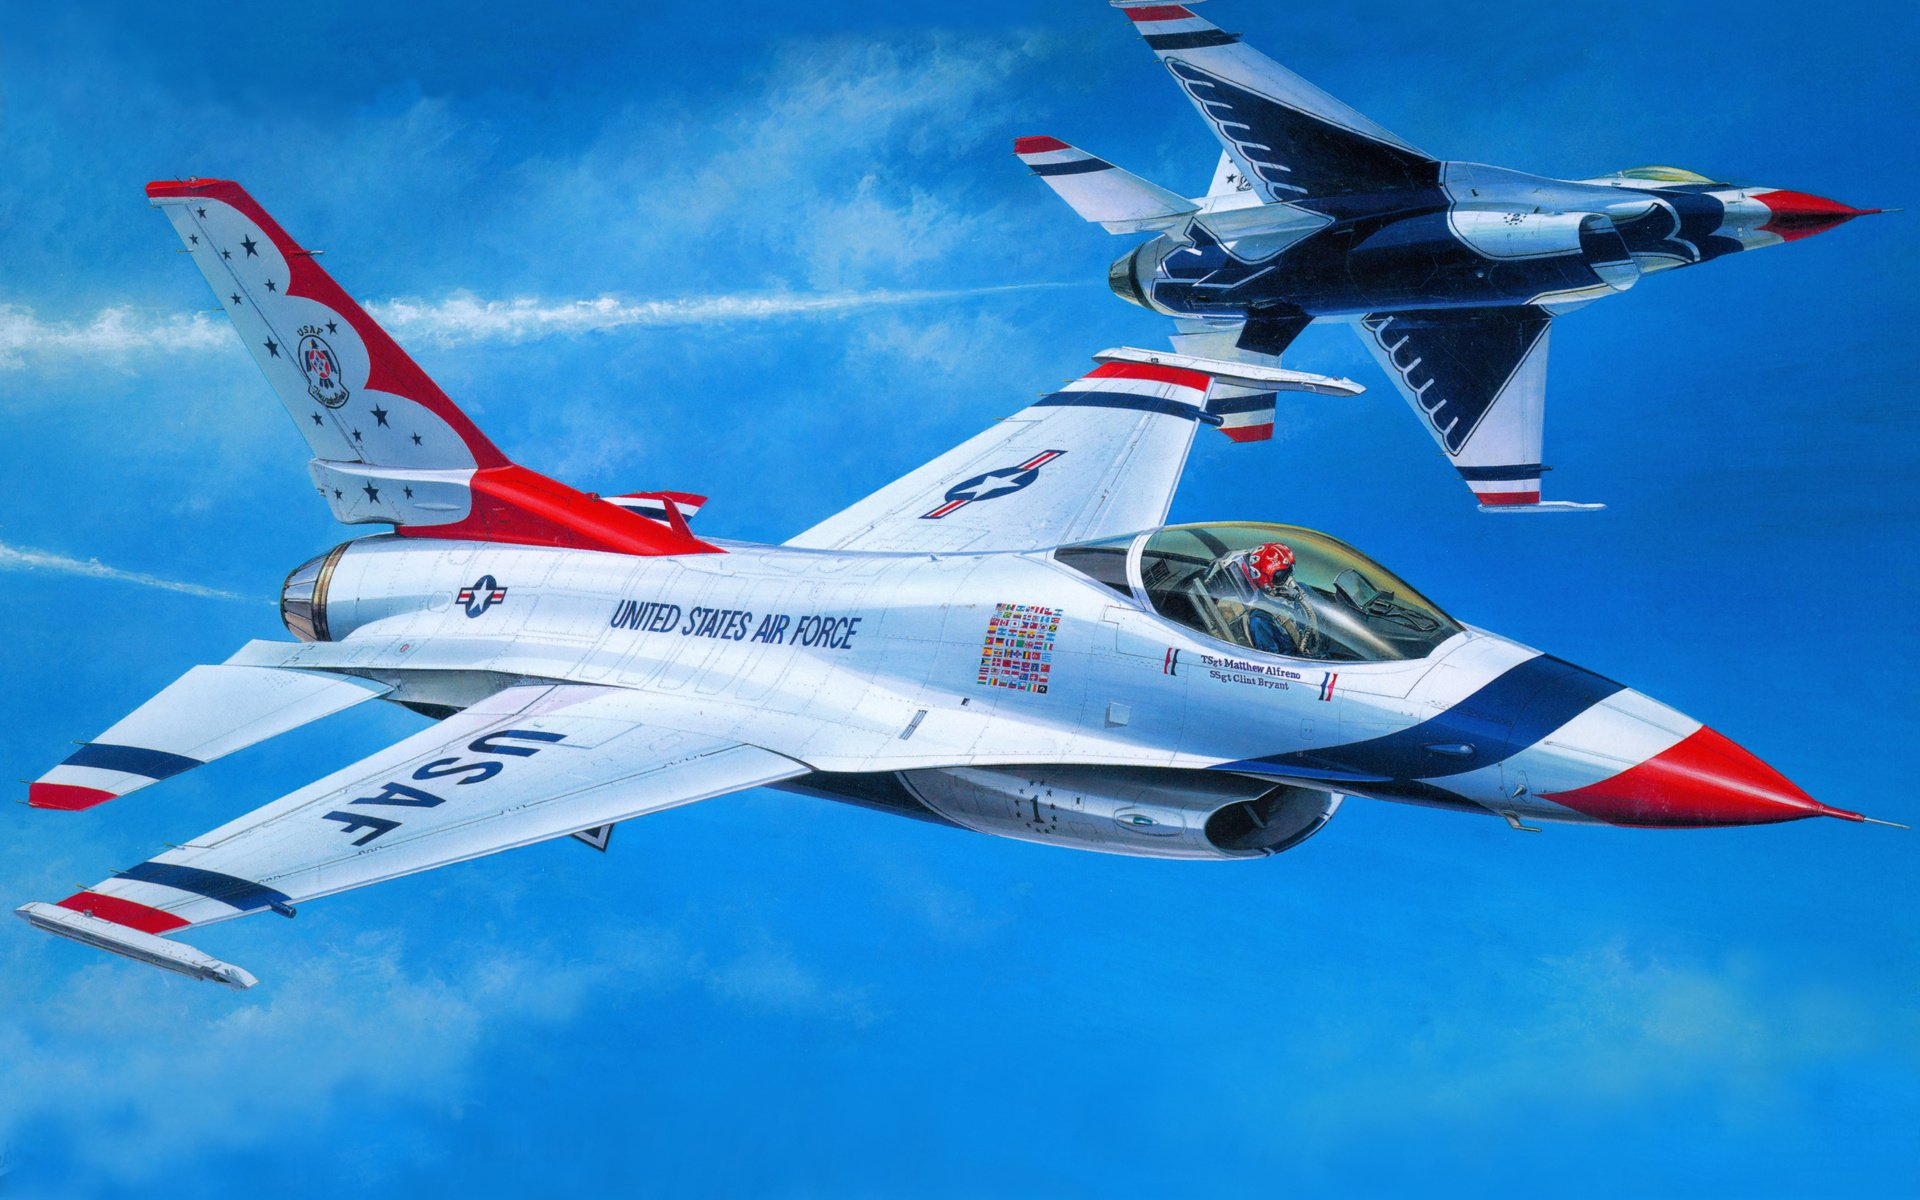 Military - General Dynamics F-16 Fighting Falcon  Airplane Jet Fighter Fly Wallpaper